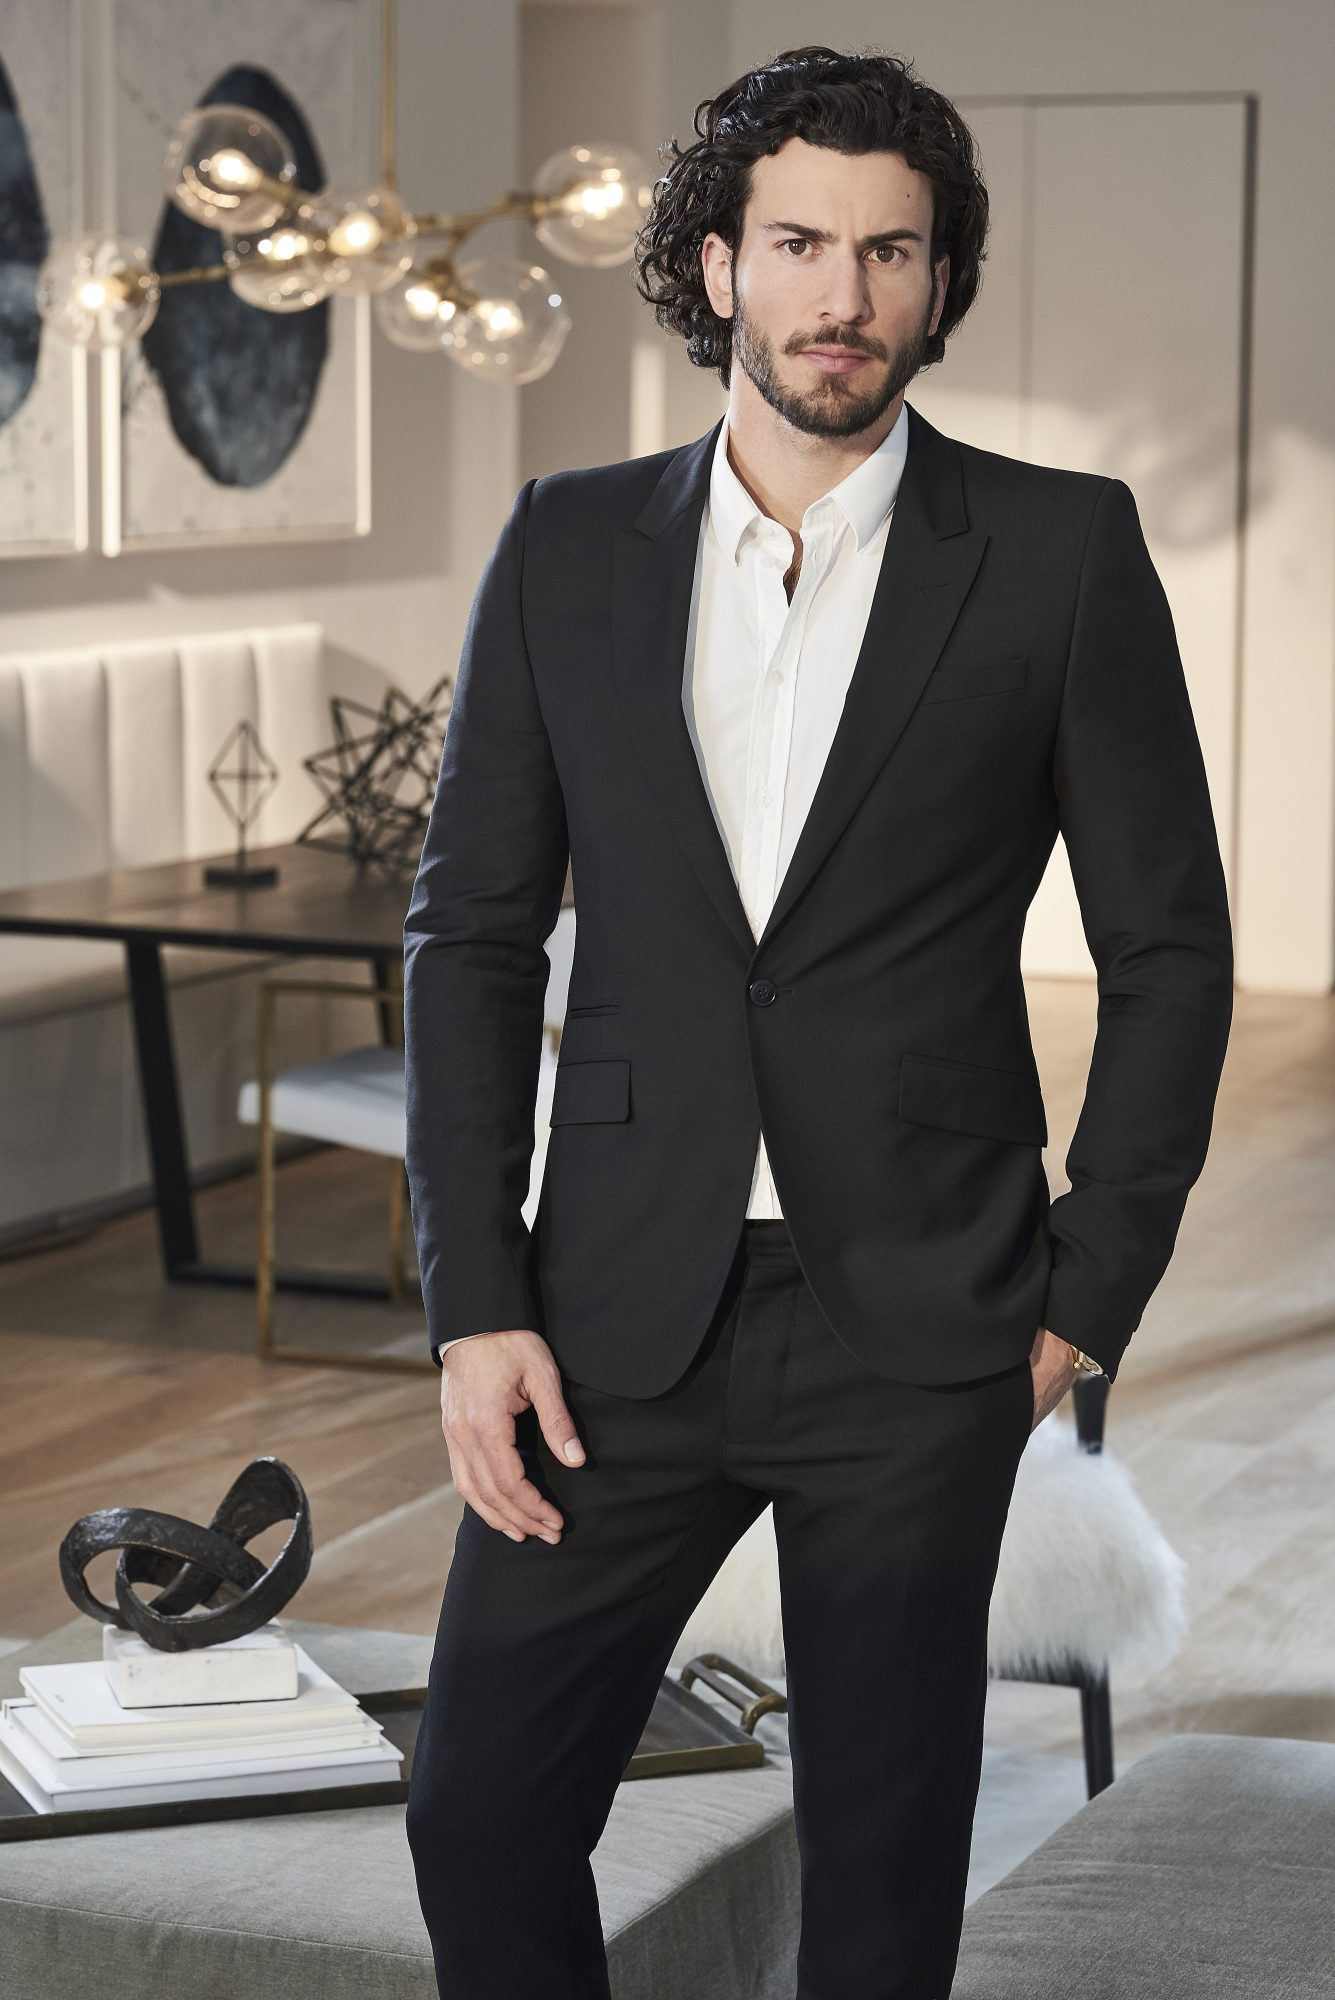 Million Dollar Listing New York - Season 6